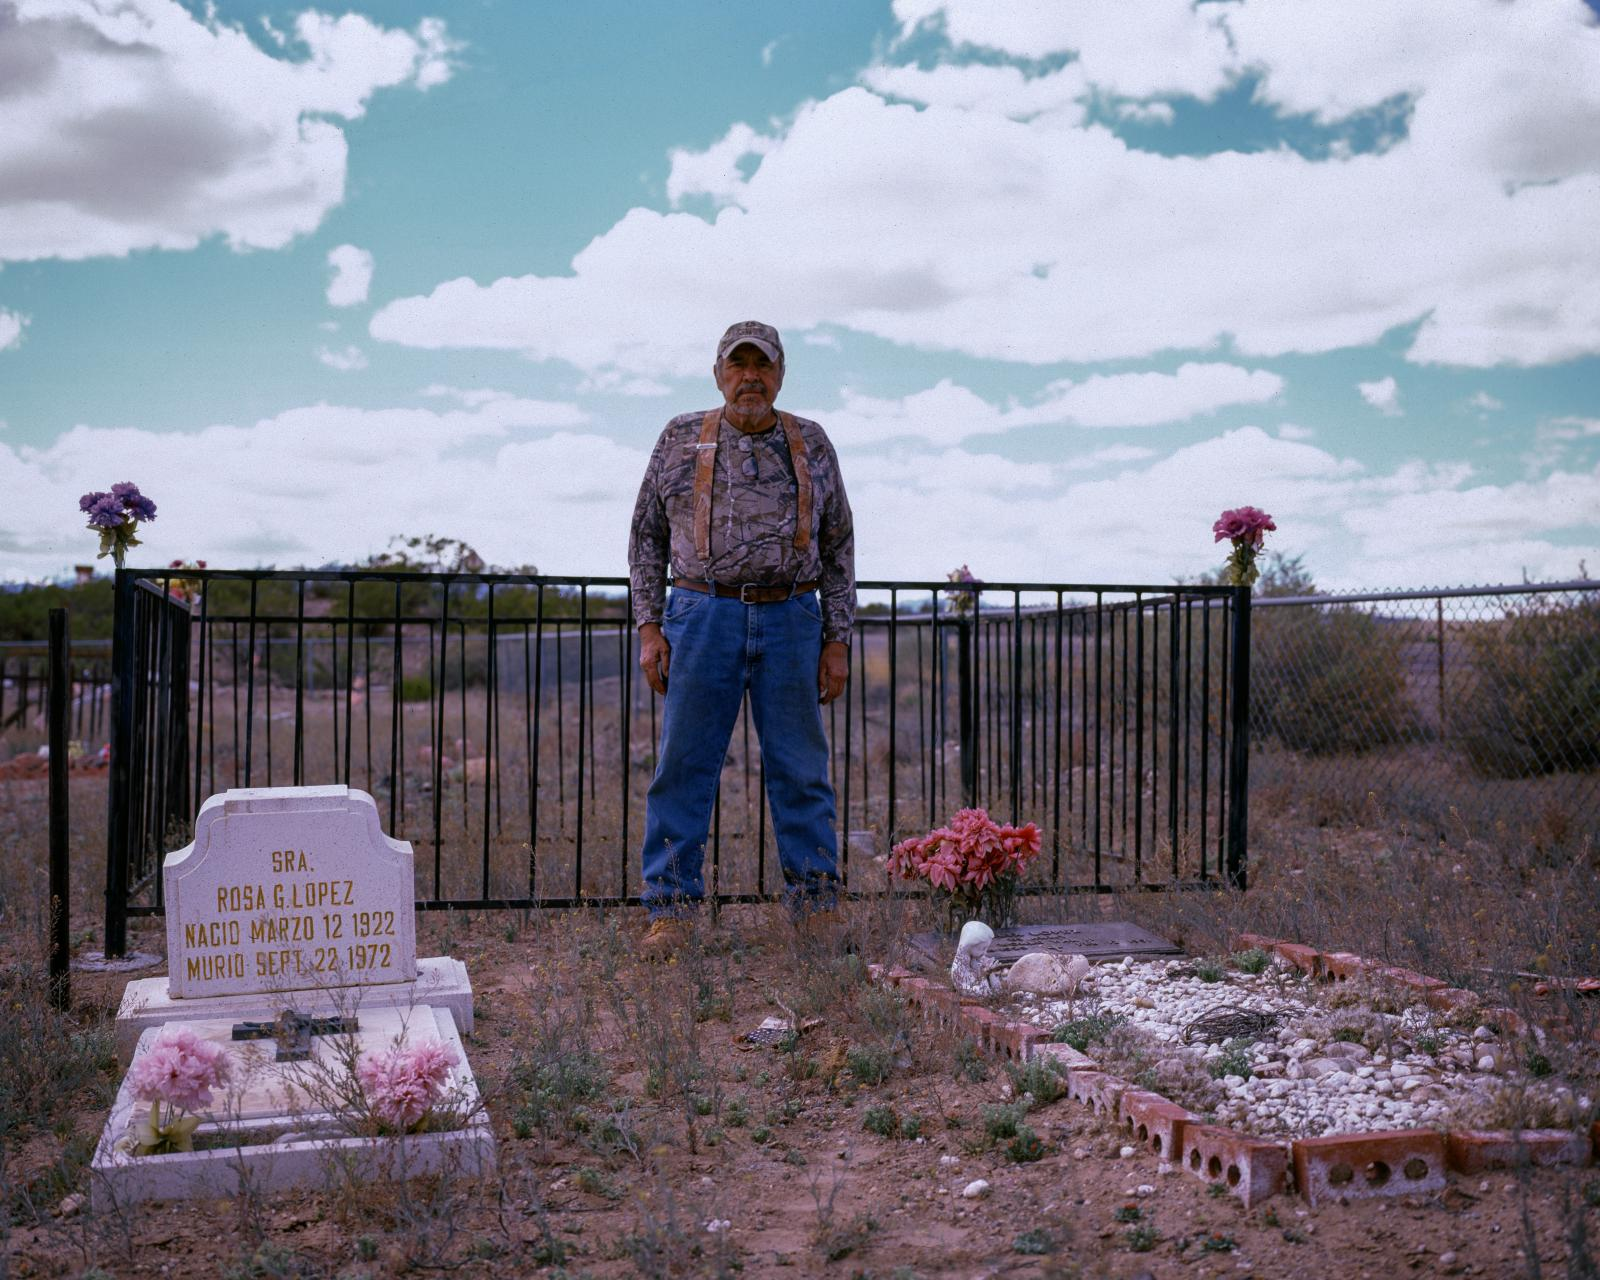 Richard Lopez, lymphoma cancer survivor, San Antonio, New Mexico April 2, 2016  He stands at the graveside of his parents, both dead from cancer and wonders if his and their sicknesses weren't caused by the atomic test. Lopez worked in the soil amid fall out from the1945 Trinity test.